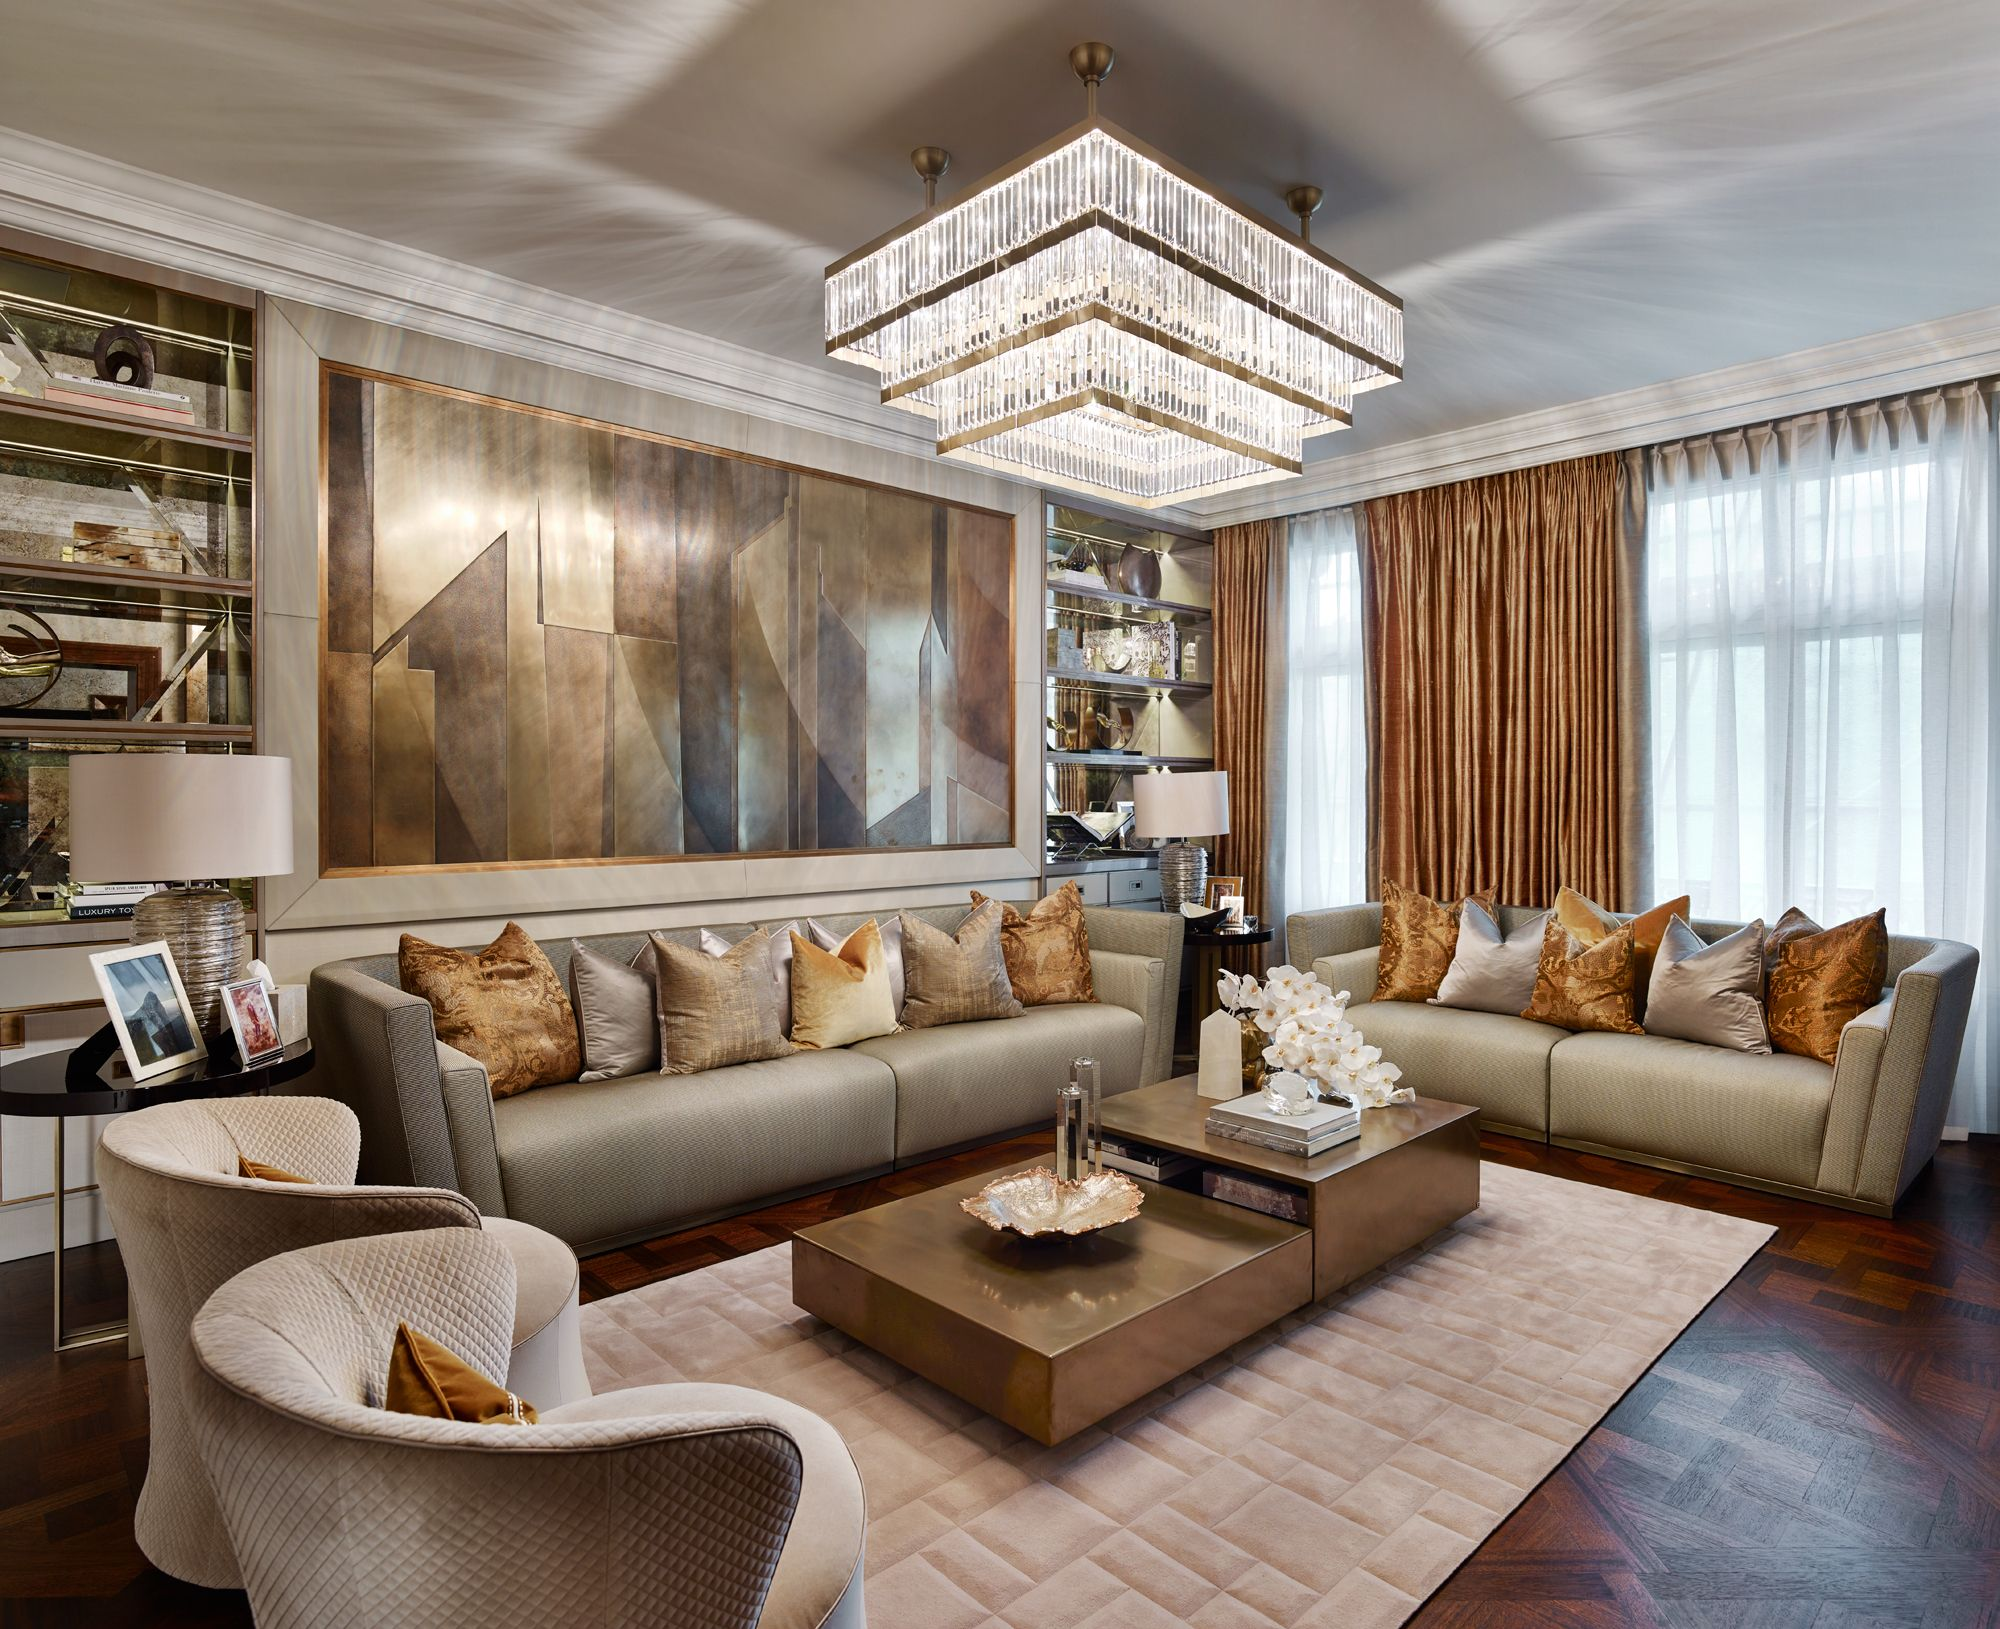 Pinelicyon On Bayswater Mansion Residence  Pinterest  Living Best Interior Designs For Living Rooms 2018